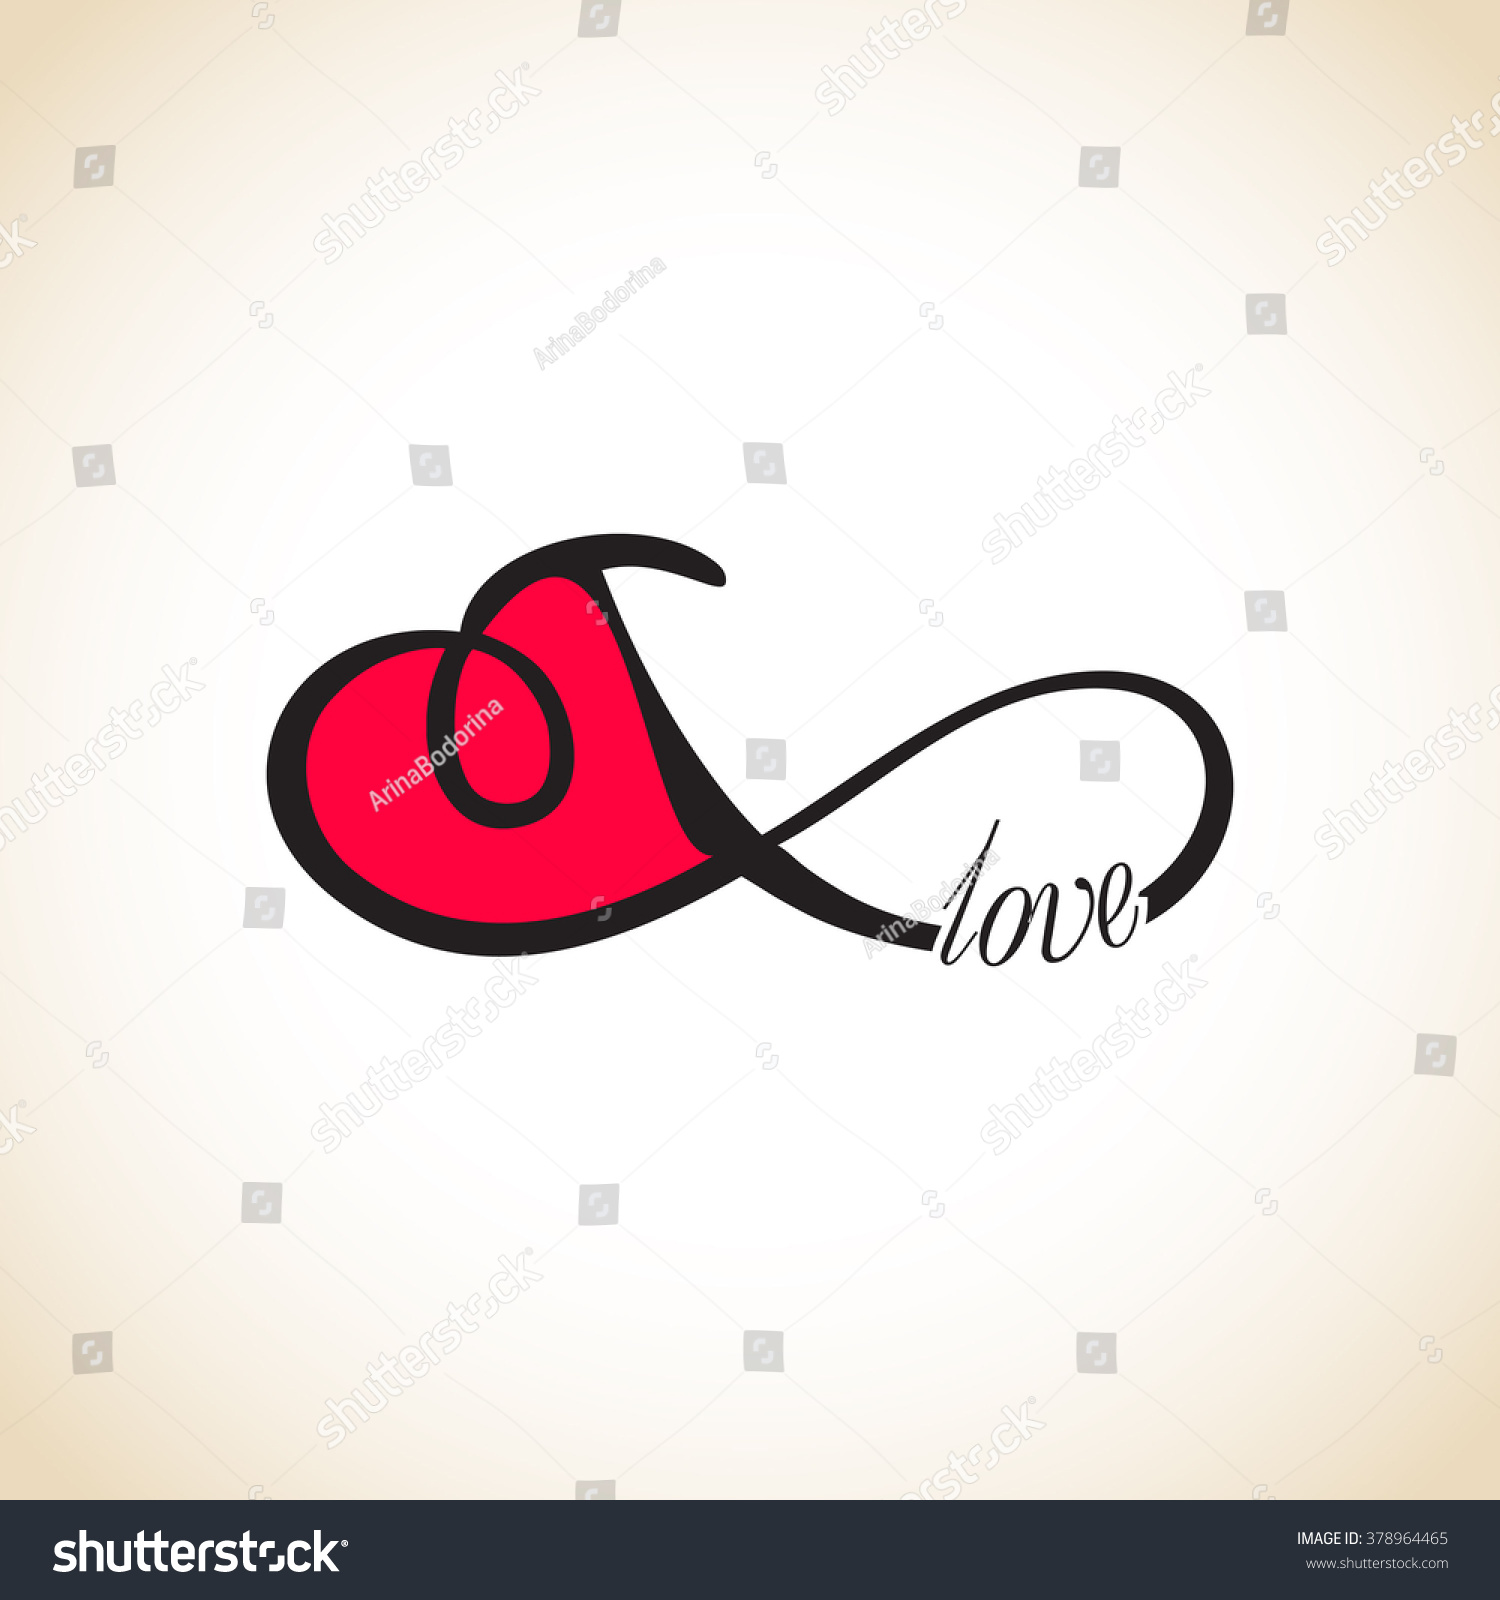 Infinity Love Forever Love Stock Vector (Royalty Free) 378964465 ...